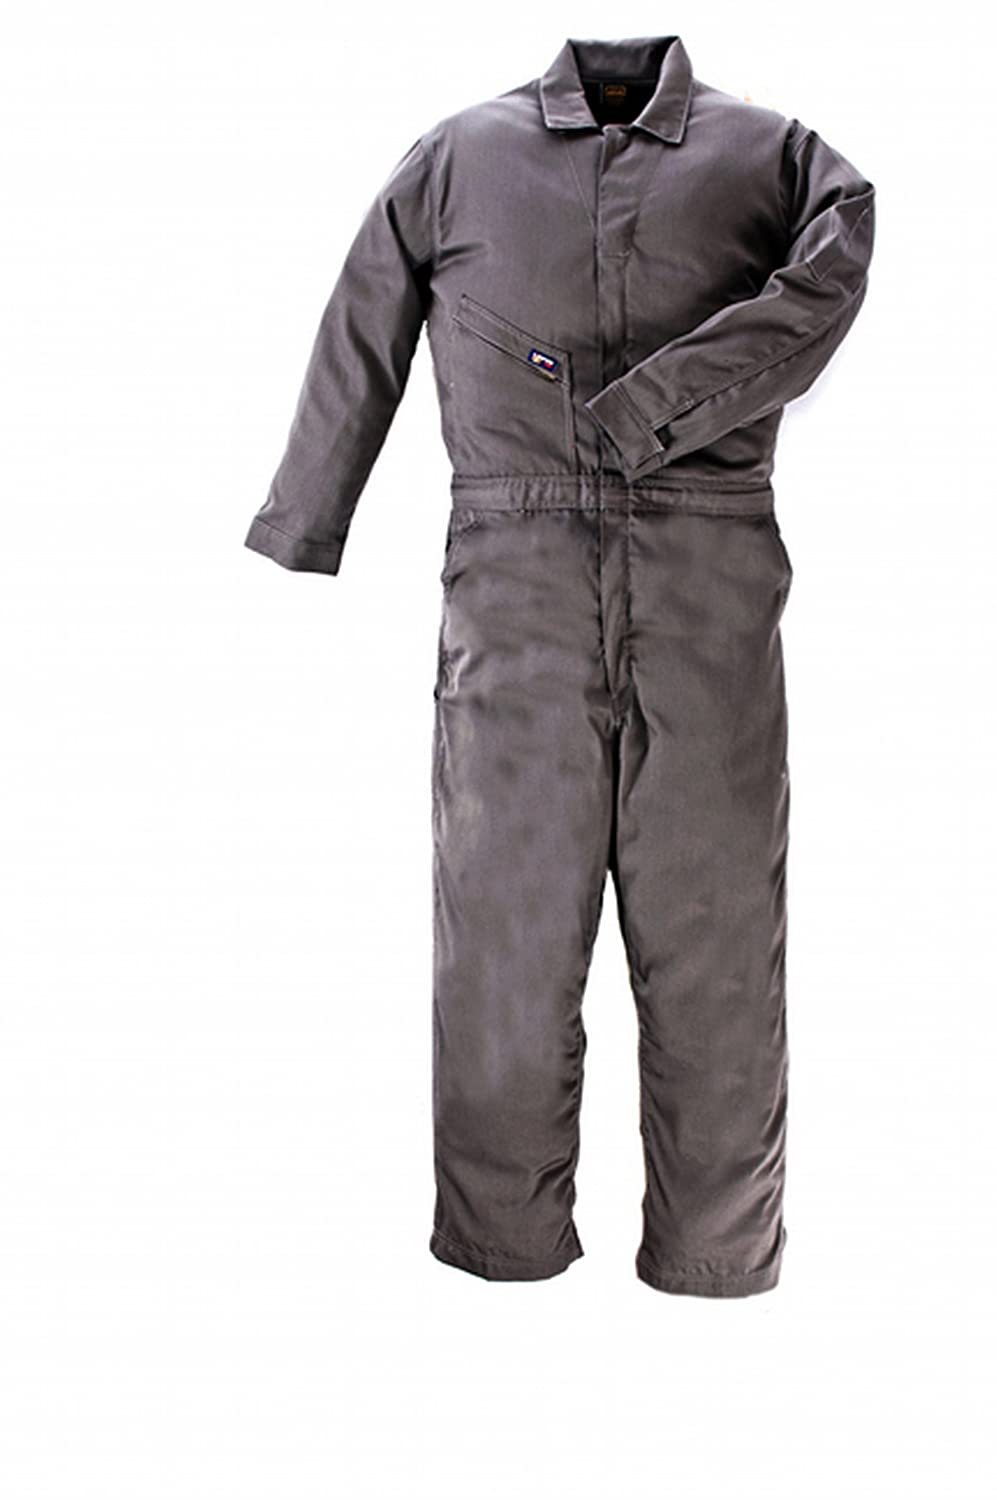 LAPCO CVFRD7GY-XL TL Lightweight 100-Percent Cotton Flame Resistant Deluxe Coverall, Gray, X-Large, Tall